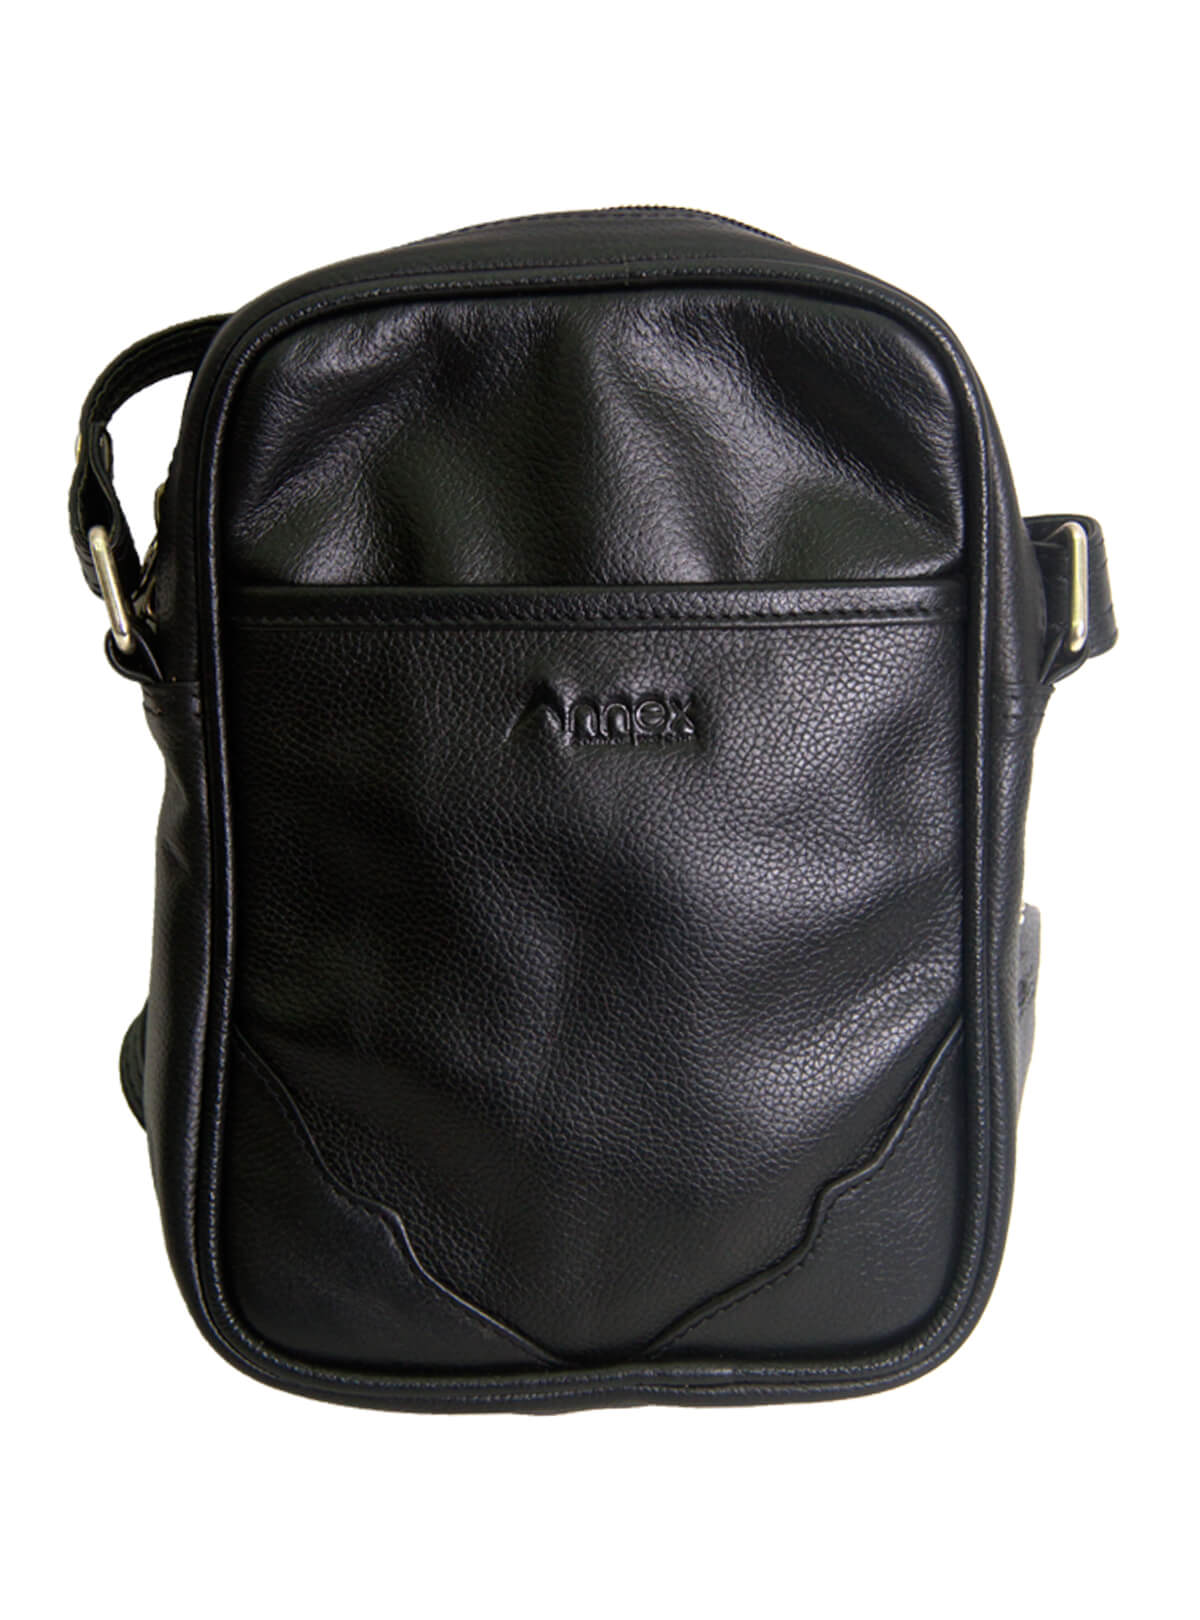 Black Side Bag Medium